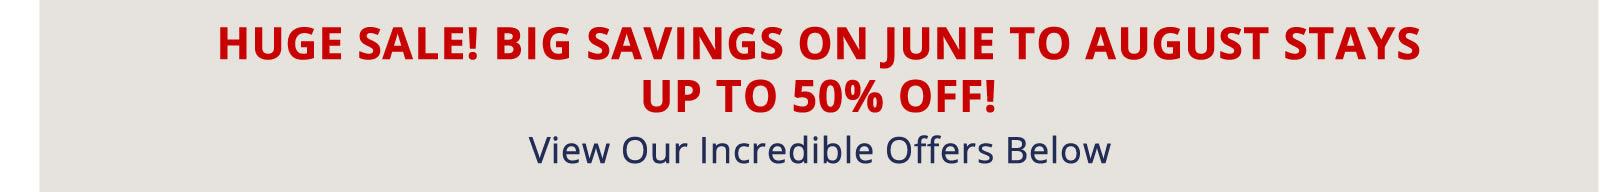 Book Now for Big Savings on June to August Stays. Up to 50% off!